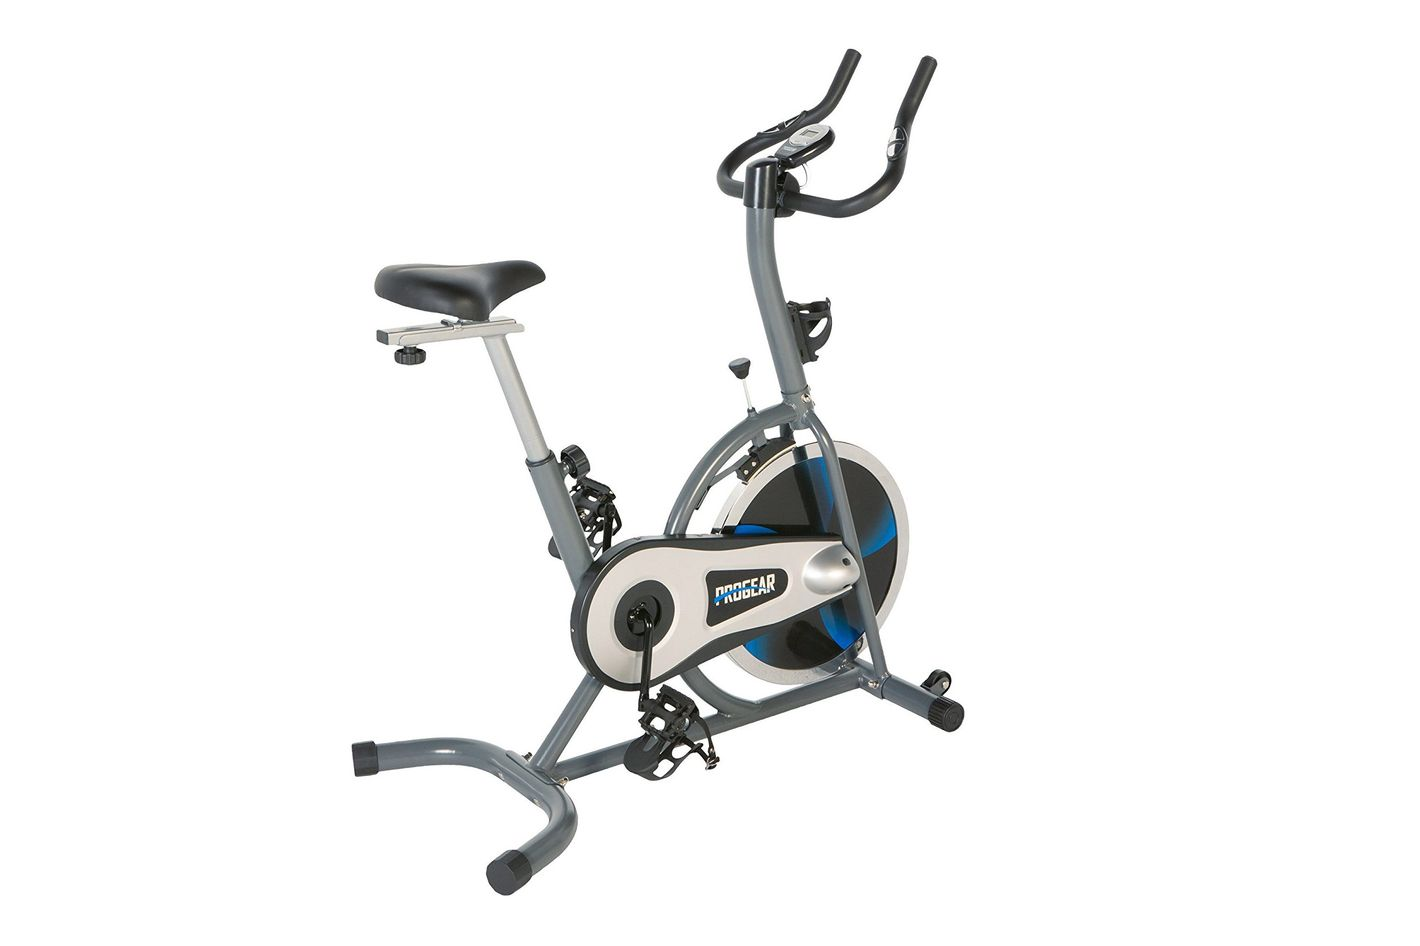 13c1e0fbfef 14 Best Exercise Bikes and Stationary Bikes 2019